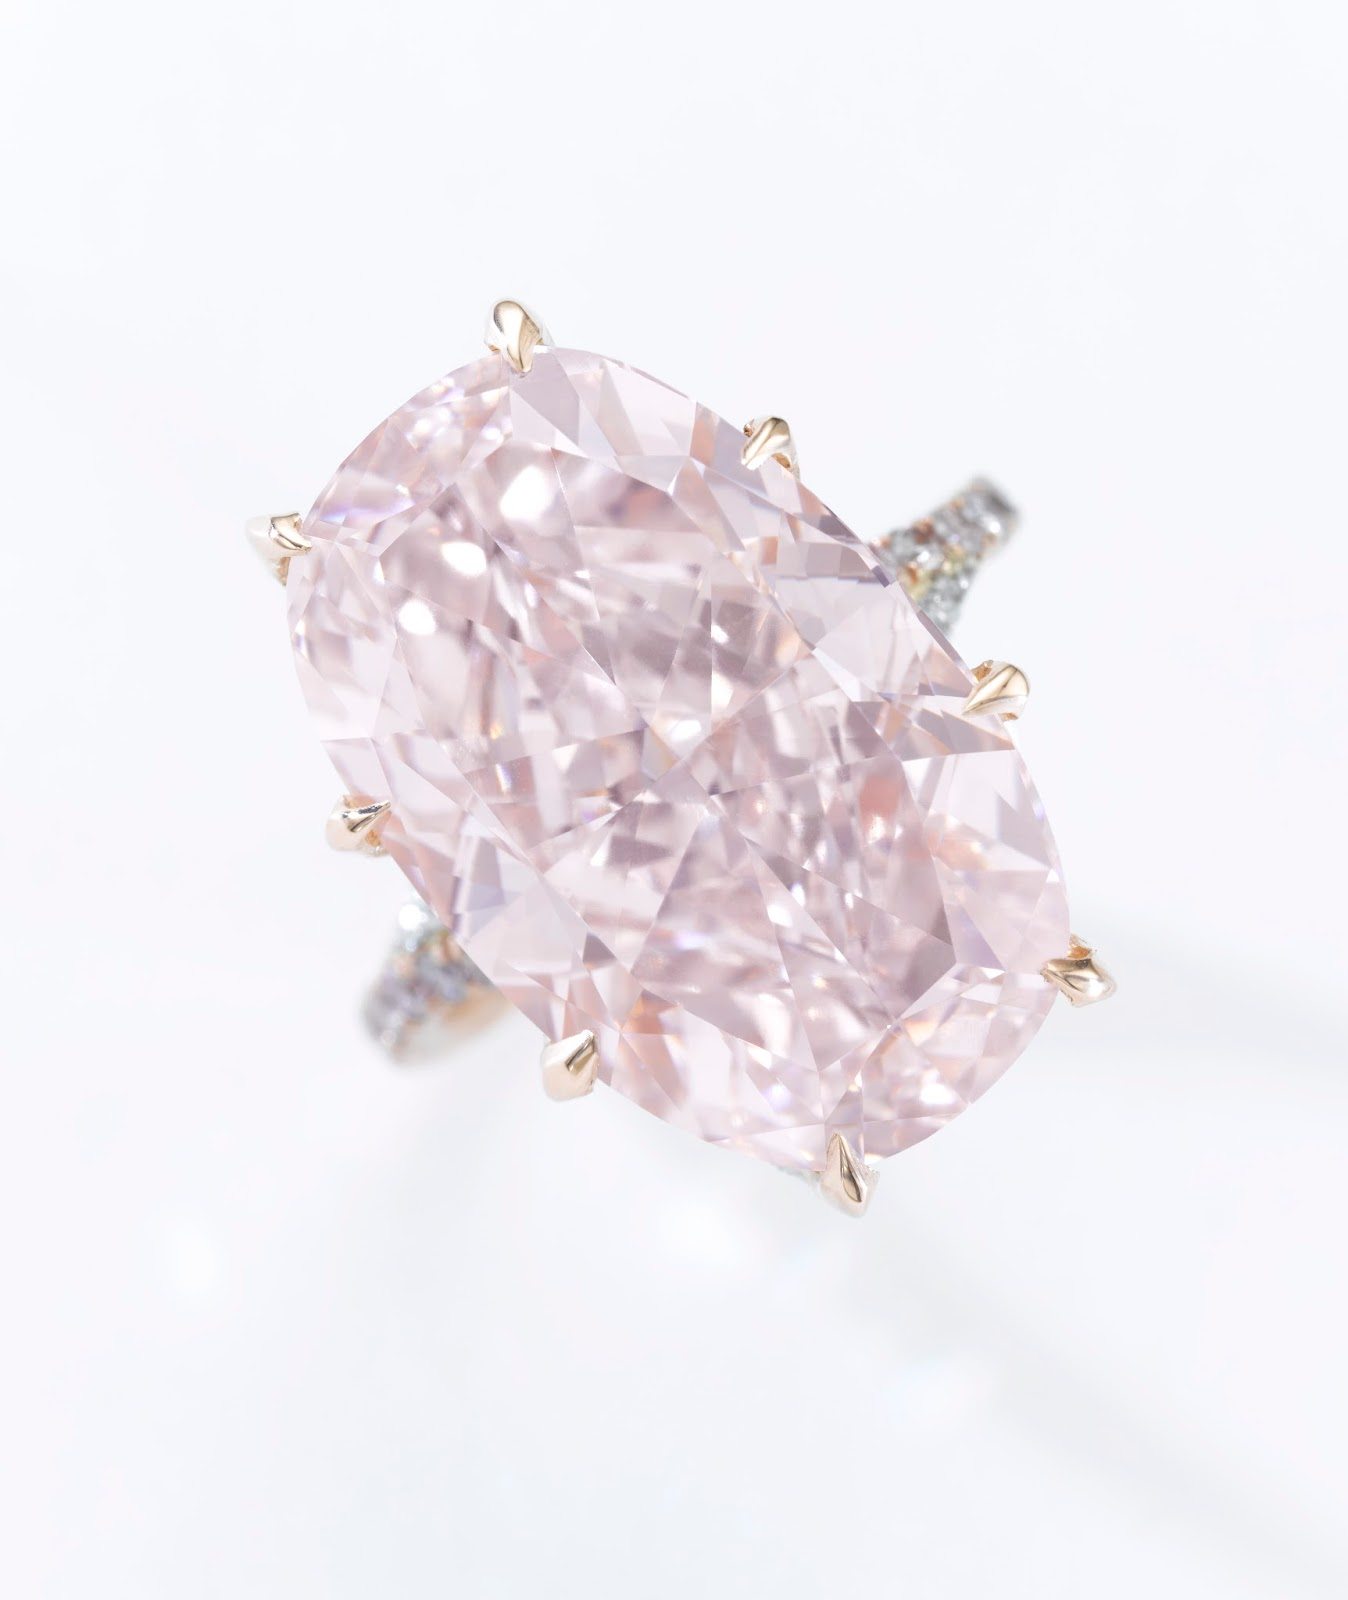 Lot 489 - Fancy pink diamond ring - 21.11 carats